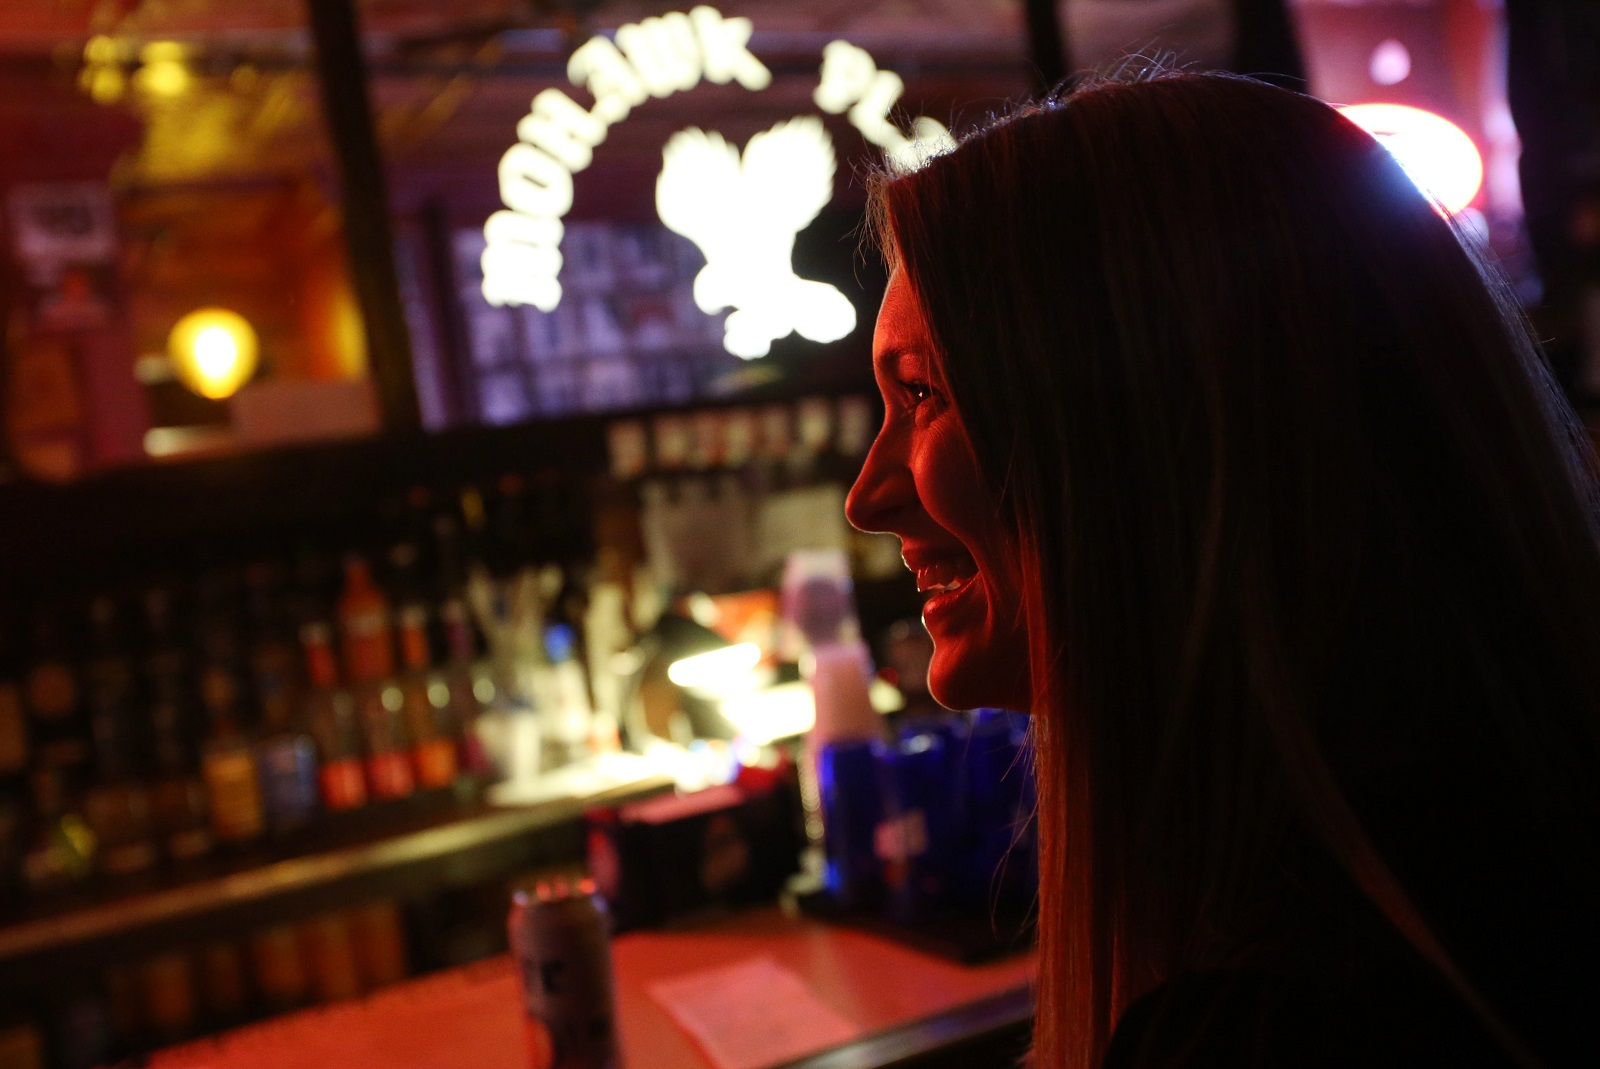 Erin Barrell, of Snyder, hangs out with friends at the bar before the opening act takes the Mohawk Place stage. (Sharon Cantillon/Buffalo News)